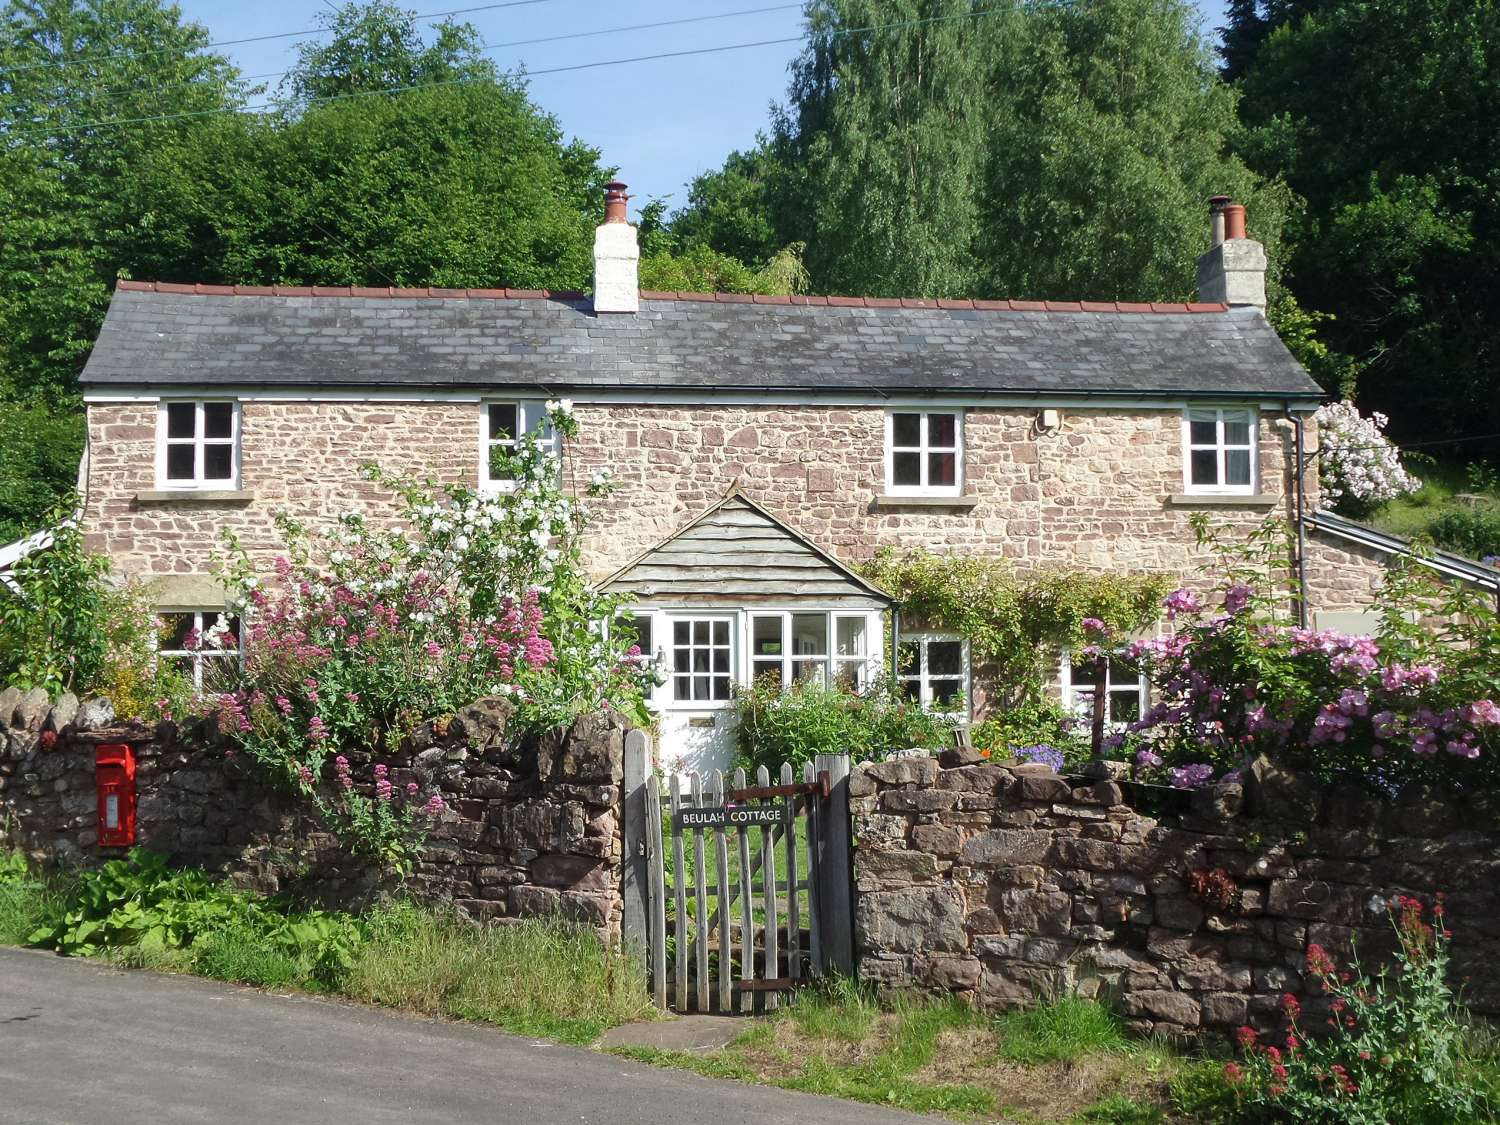 Holiday Cottages in Gloucestershire: Beulah Cottage, Littledean | skykescottages.co.uk